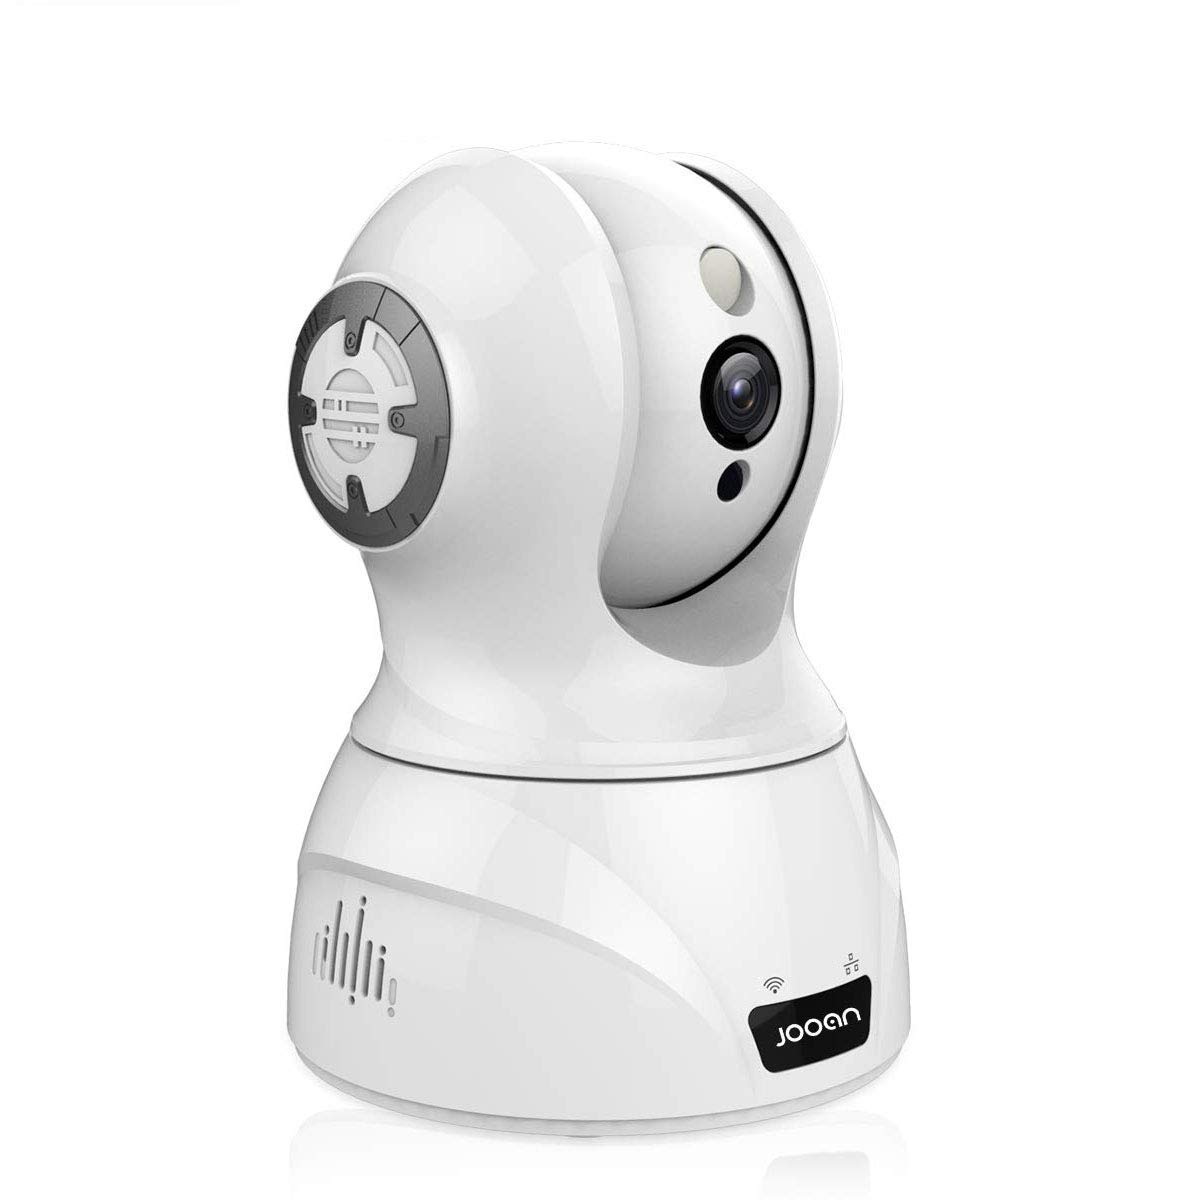 1536P WiFi Home Security Camera 3MP Surveillance Wireless System HD IP Camera for Pet Elder Nanny Baby Monitor Work with Alexa -White